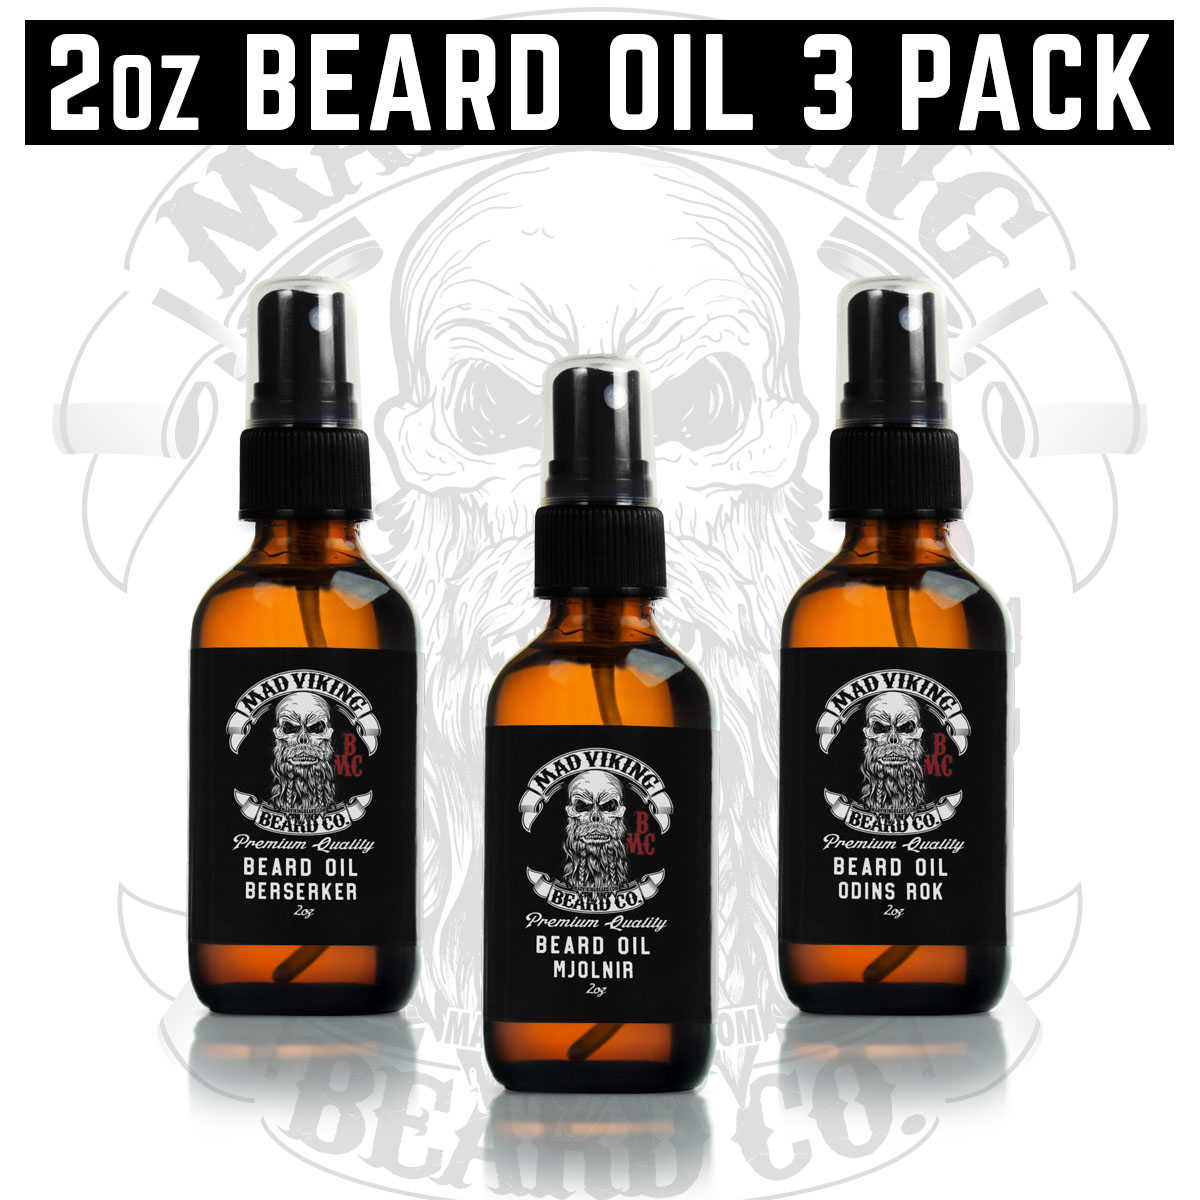 2oz Beard Oil 3 Pack